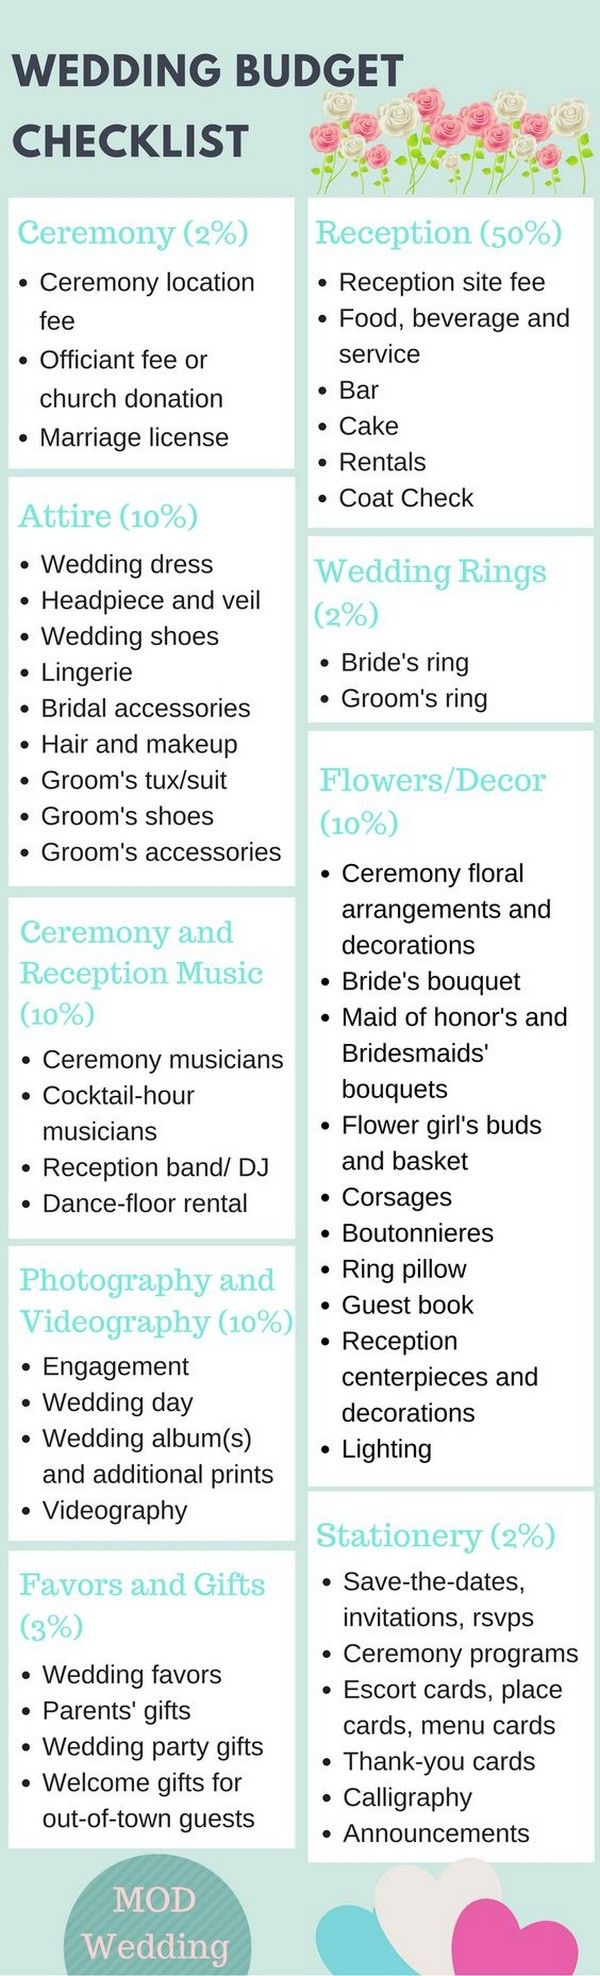 wedding budget checklist for planning guide. Hmm good idea to keep up with budget...I would love to save money and get the most for my buck